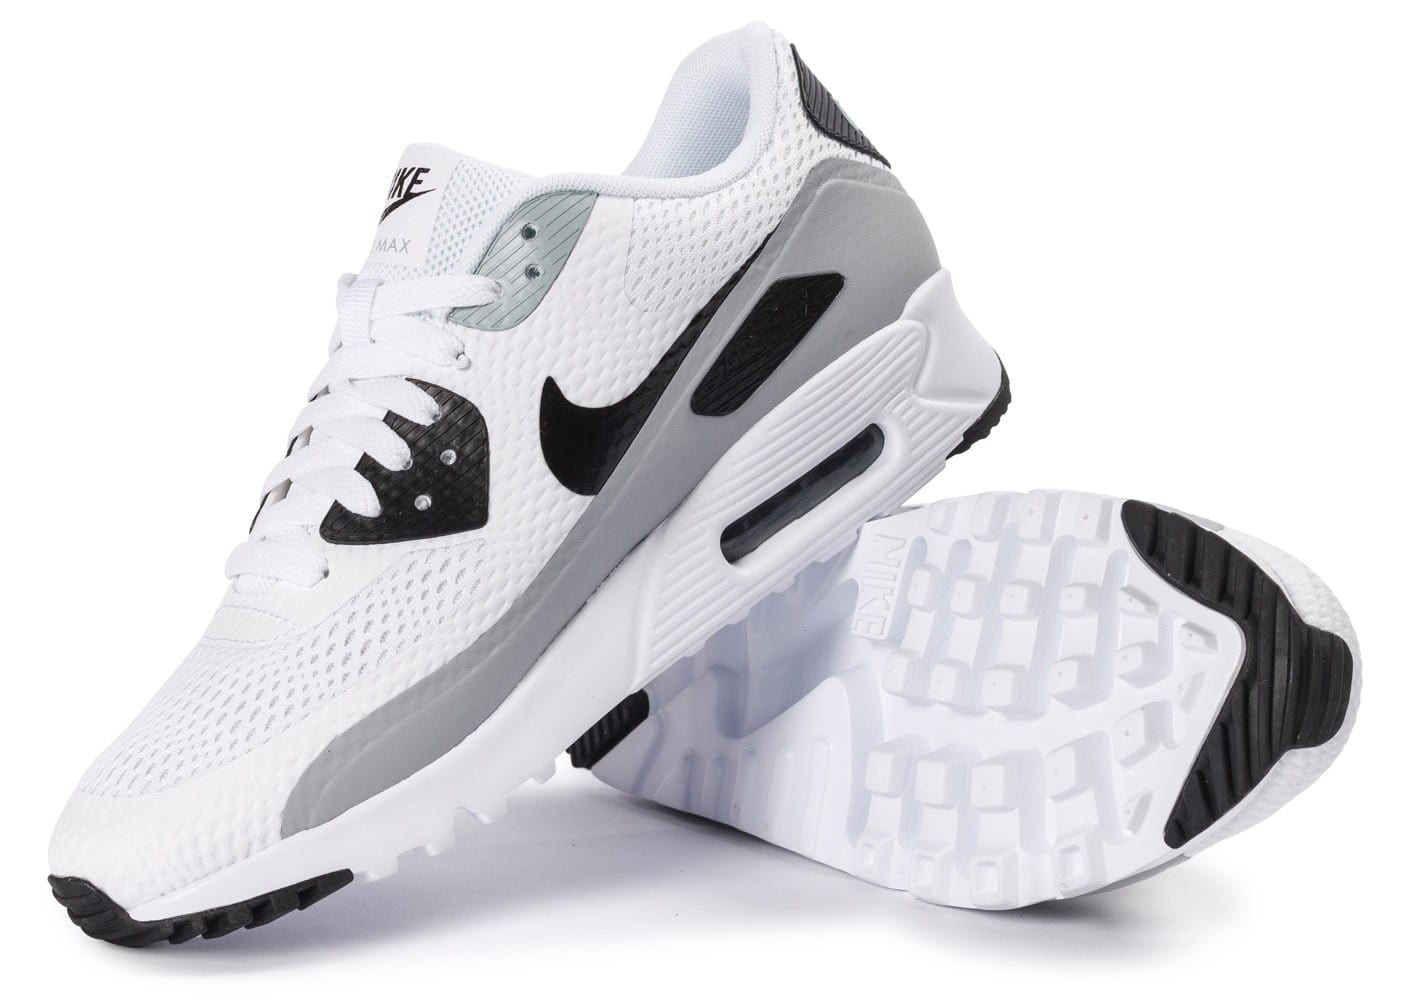 cheap for discount dbbf1 93849 ... Chaussures Nike Air Max 90 Ultra Essential blanche et grise vue  intérieure ...